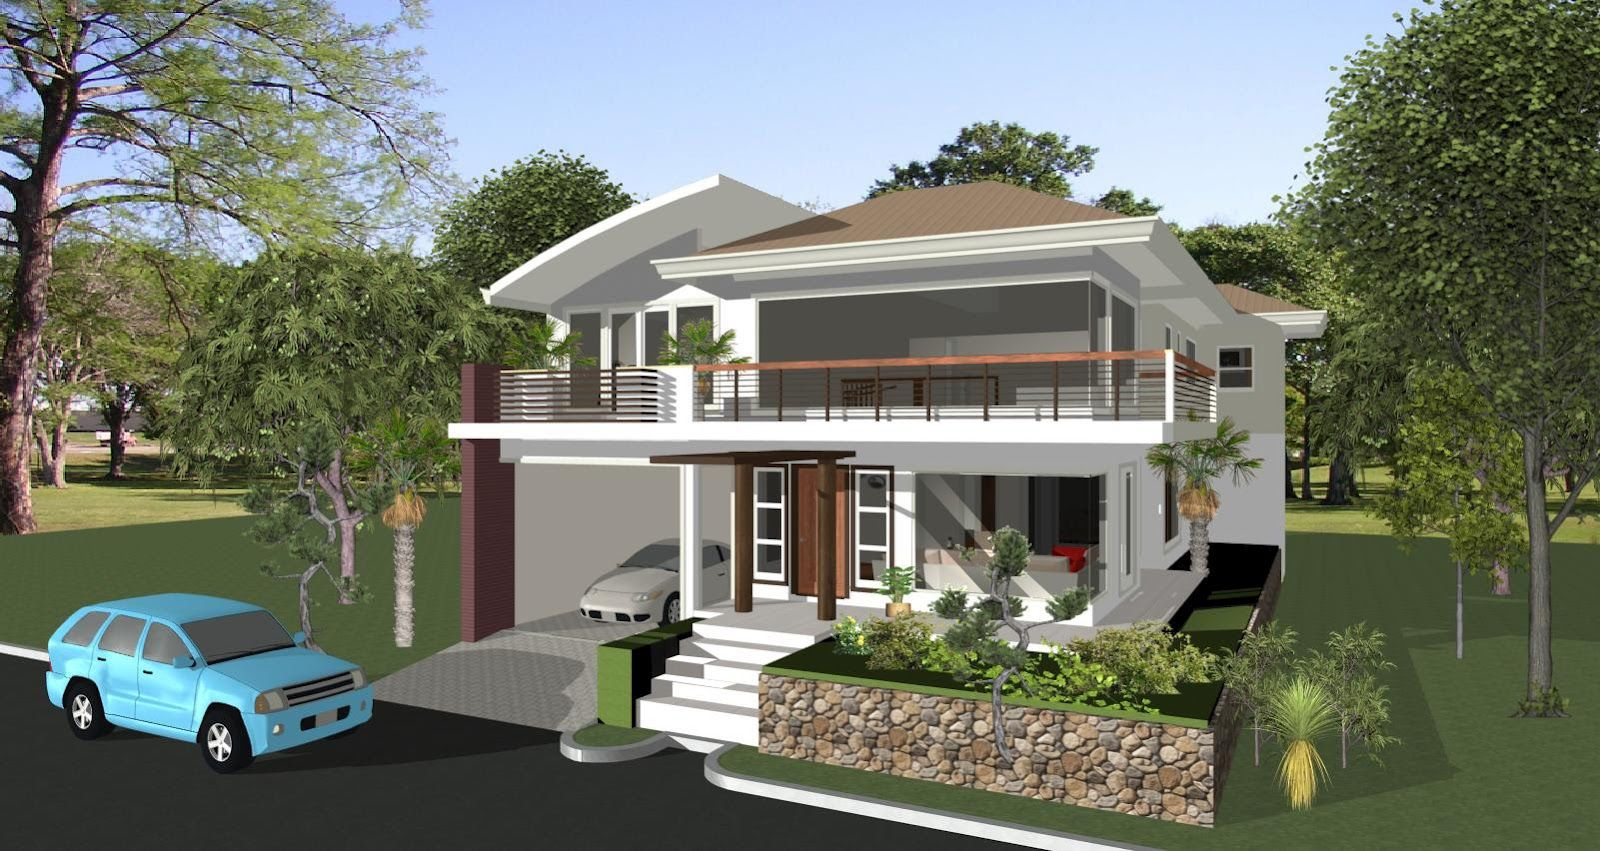 ... House Plan Balcony Black Paint Iron Open Plan Garage Elevated Steps  Entrance Front Garage Driveway: House Building Plans: Make Your Own Dream  House